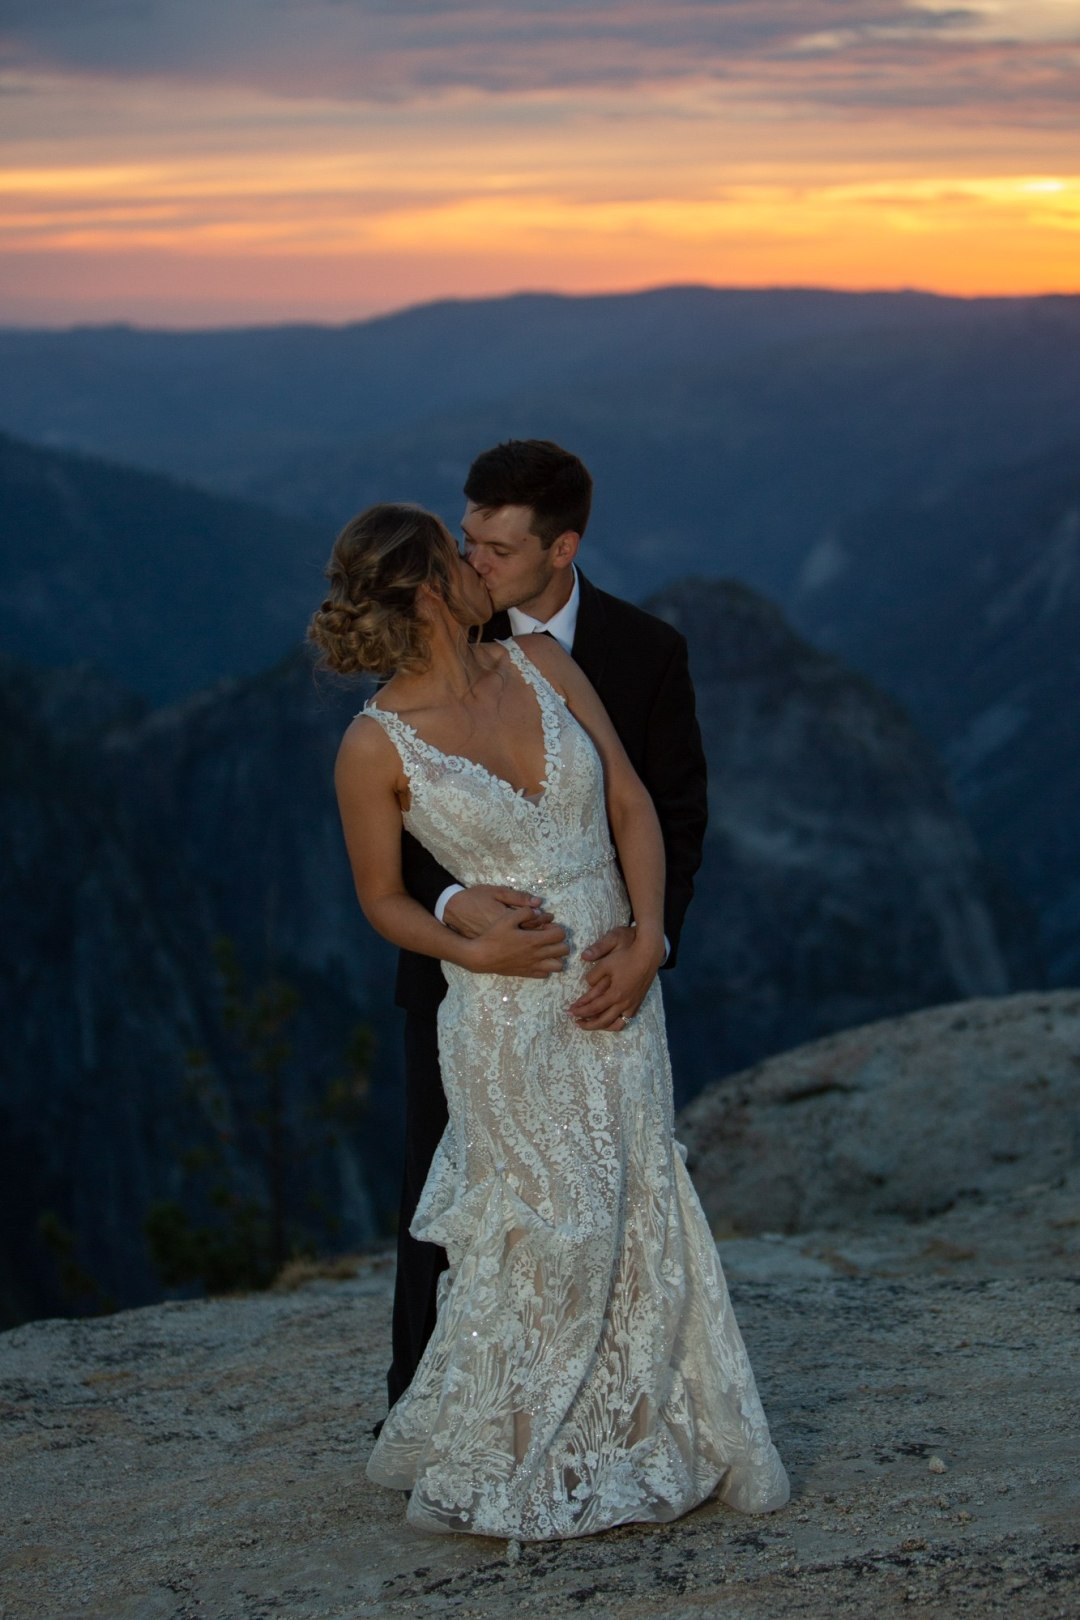 Bride and groom's first dance in the last light on Taft Point, Yosemite.